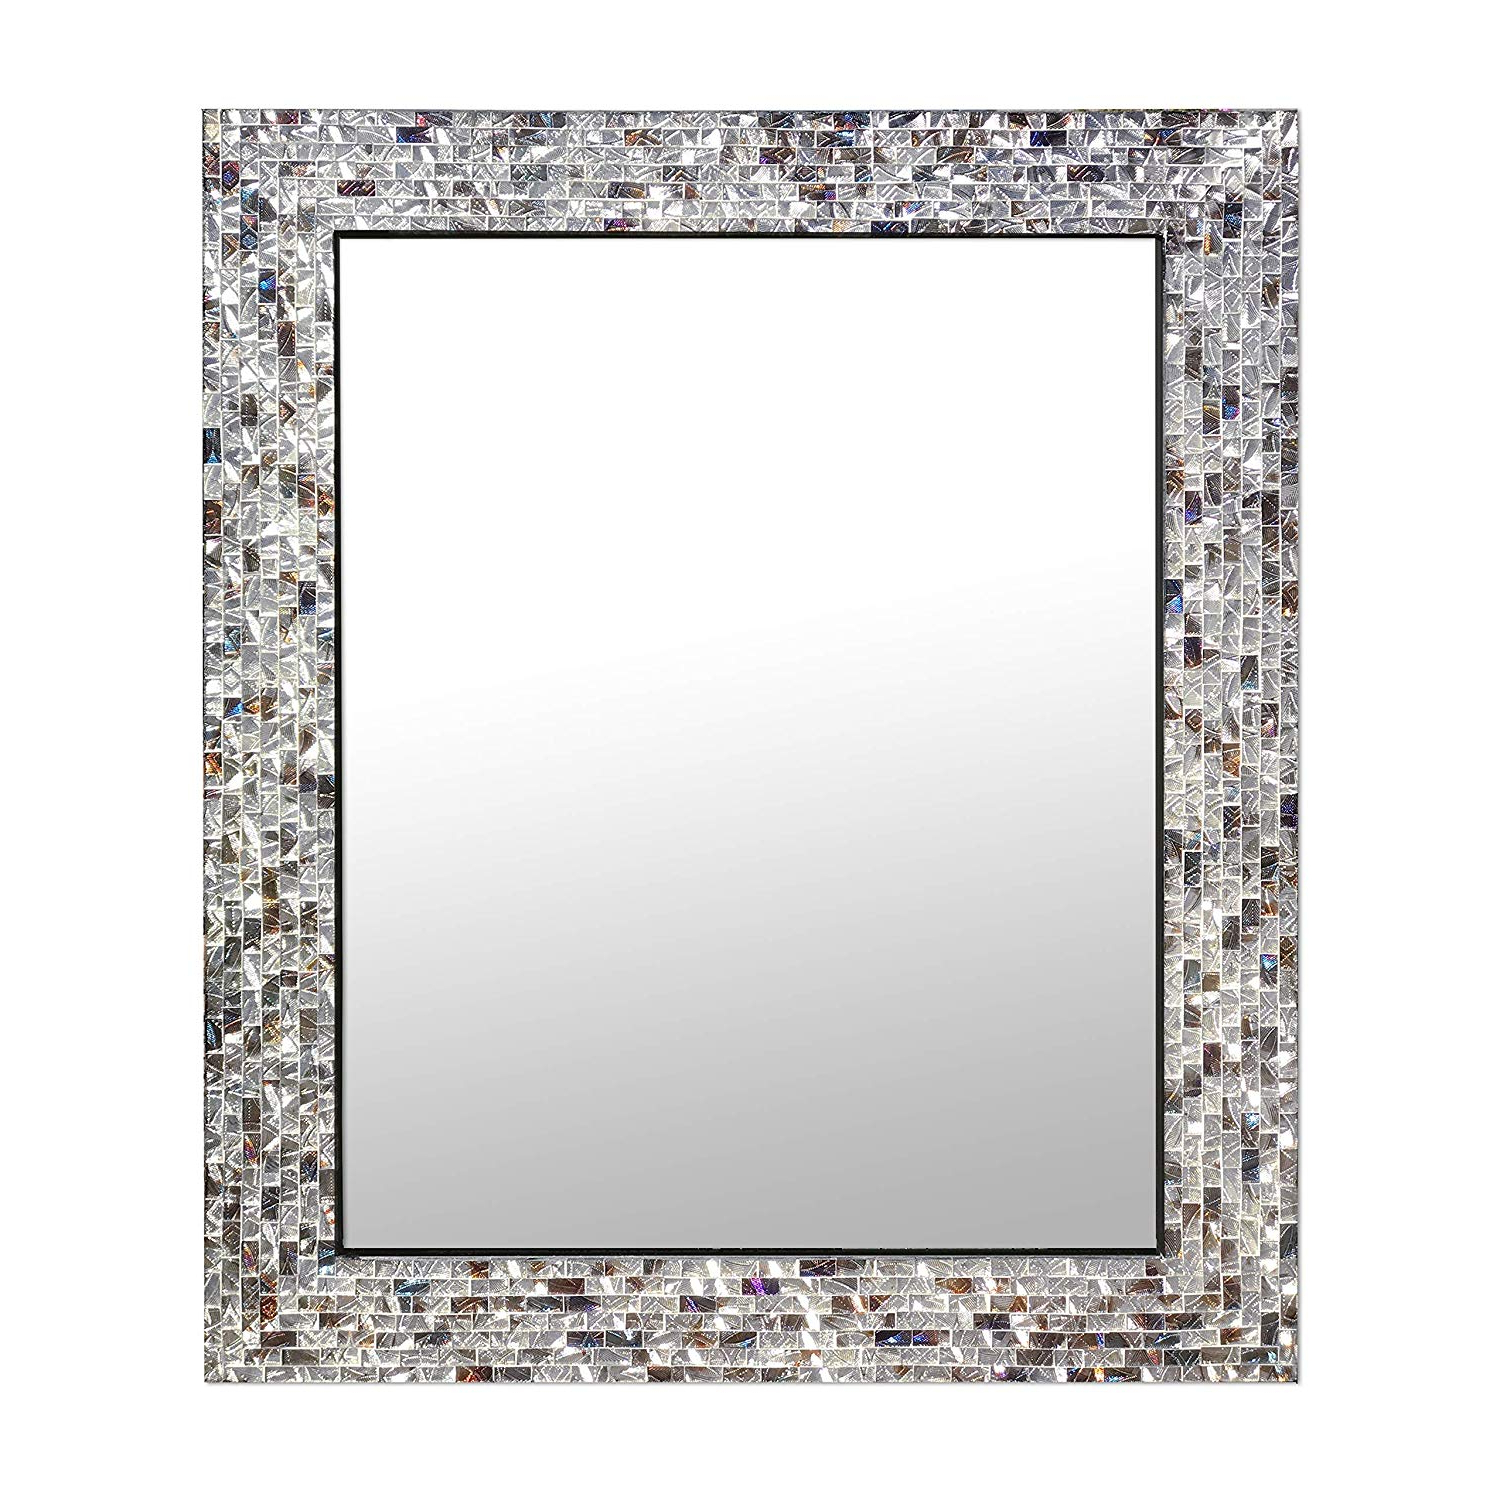 "Trendy Mosaic Framed Wall Mirrors Regarding Multi Colored & Silver, Luxe Mosaic Glass Framed Wall Mirror, Decorative Embossed Mosaic Rectangular Vanity Mirror/accent Mirror (30"" X 24"") (View 2 of 20)"